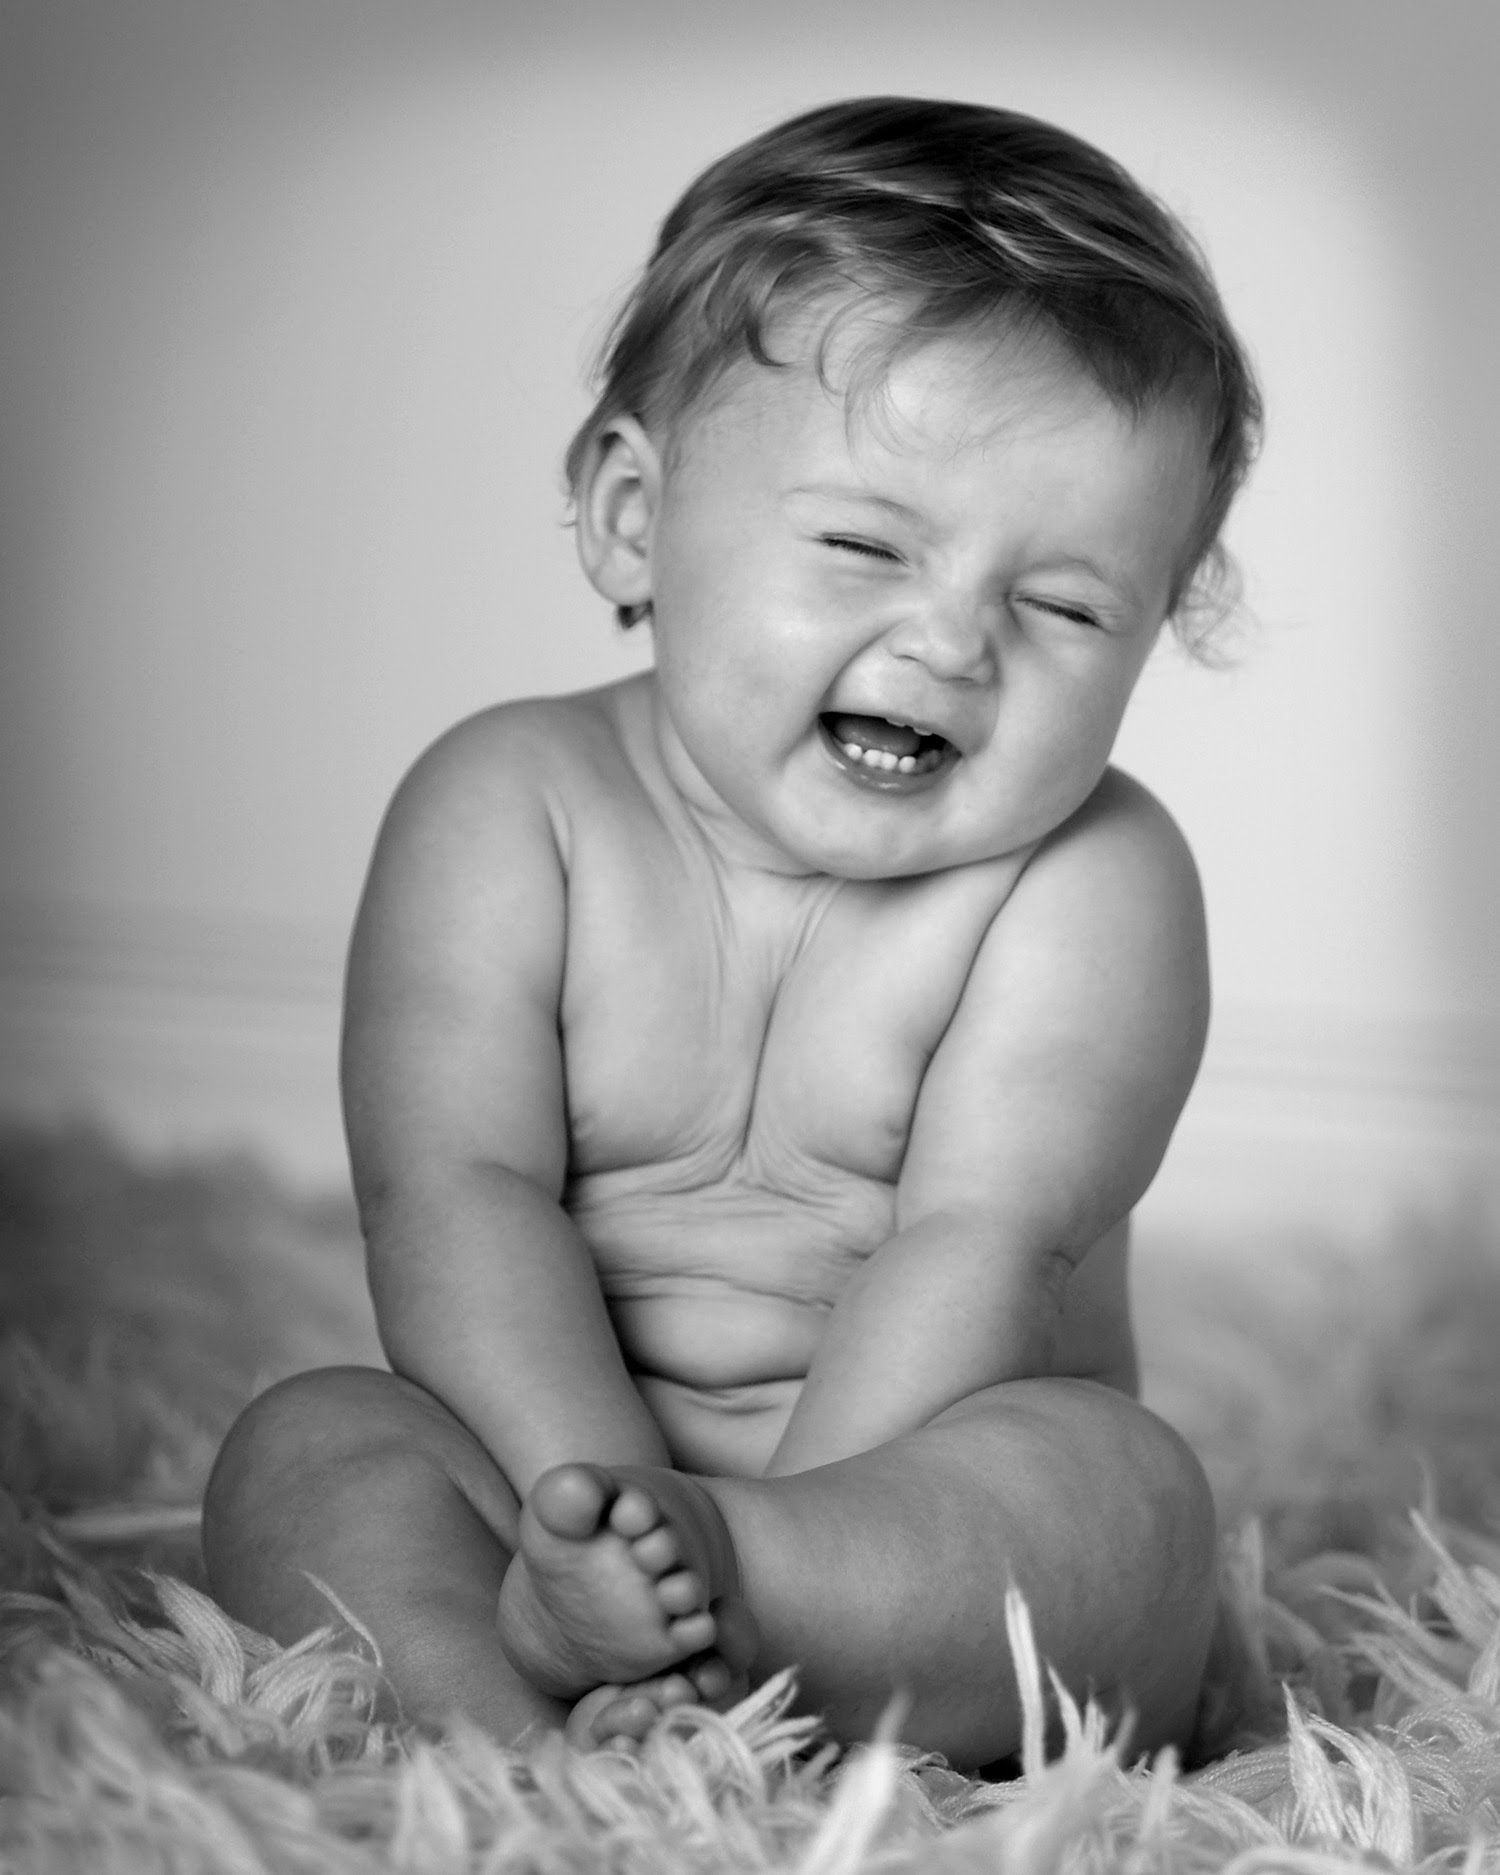 e1439b46947 Doesn t get any better than a chubby baby laughing.